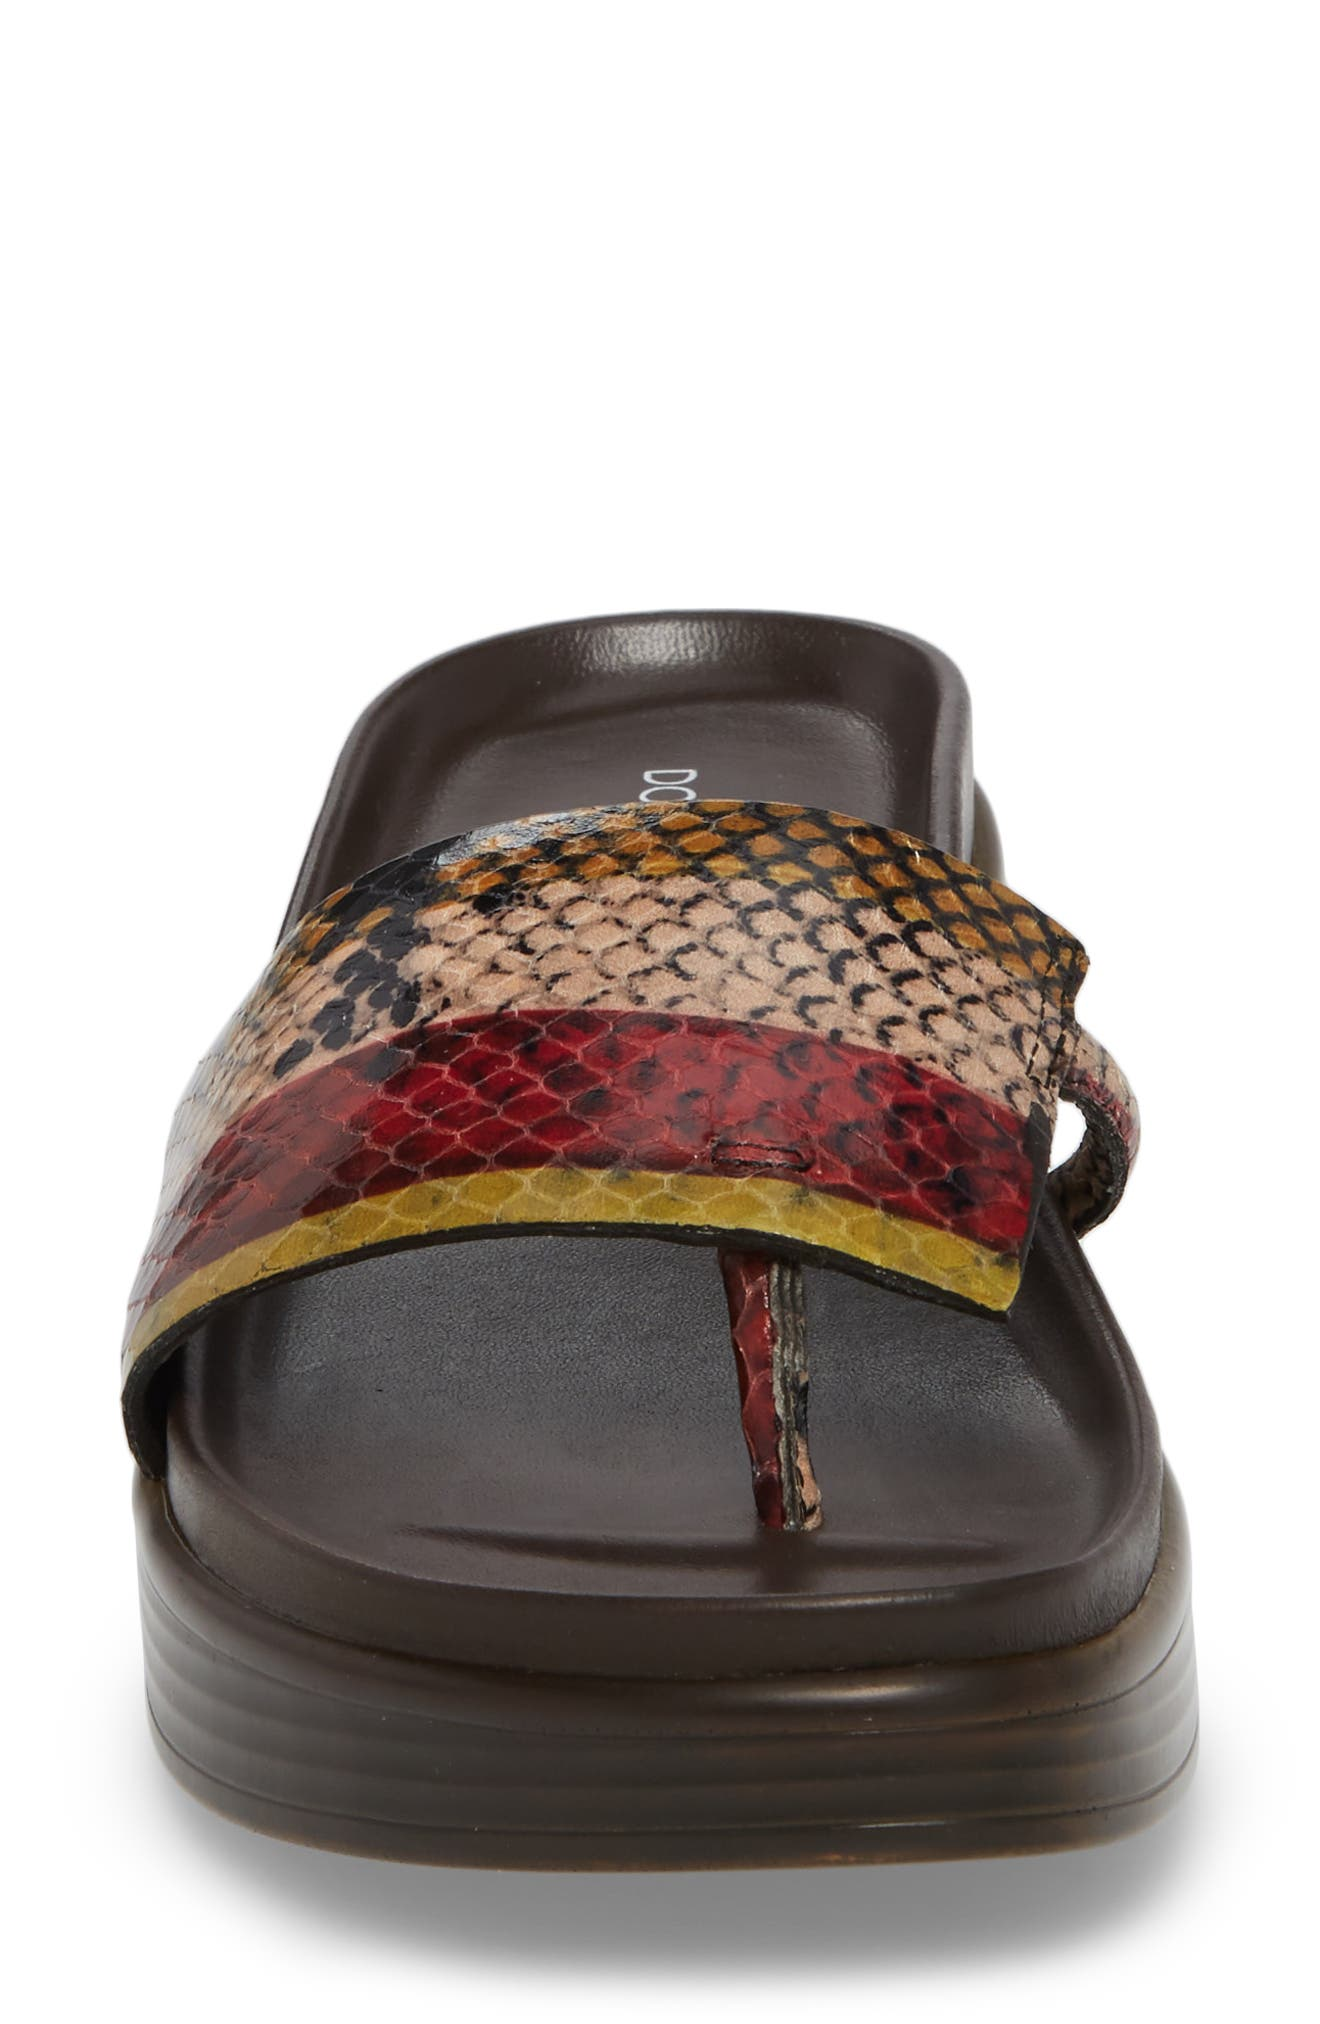 Alternate Image 4  - Donald Pliner Fifi Slide Sandal (Women)